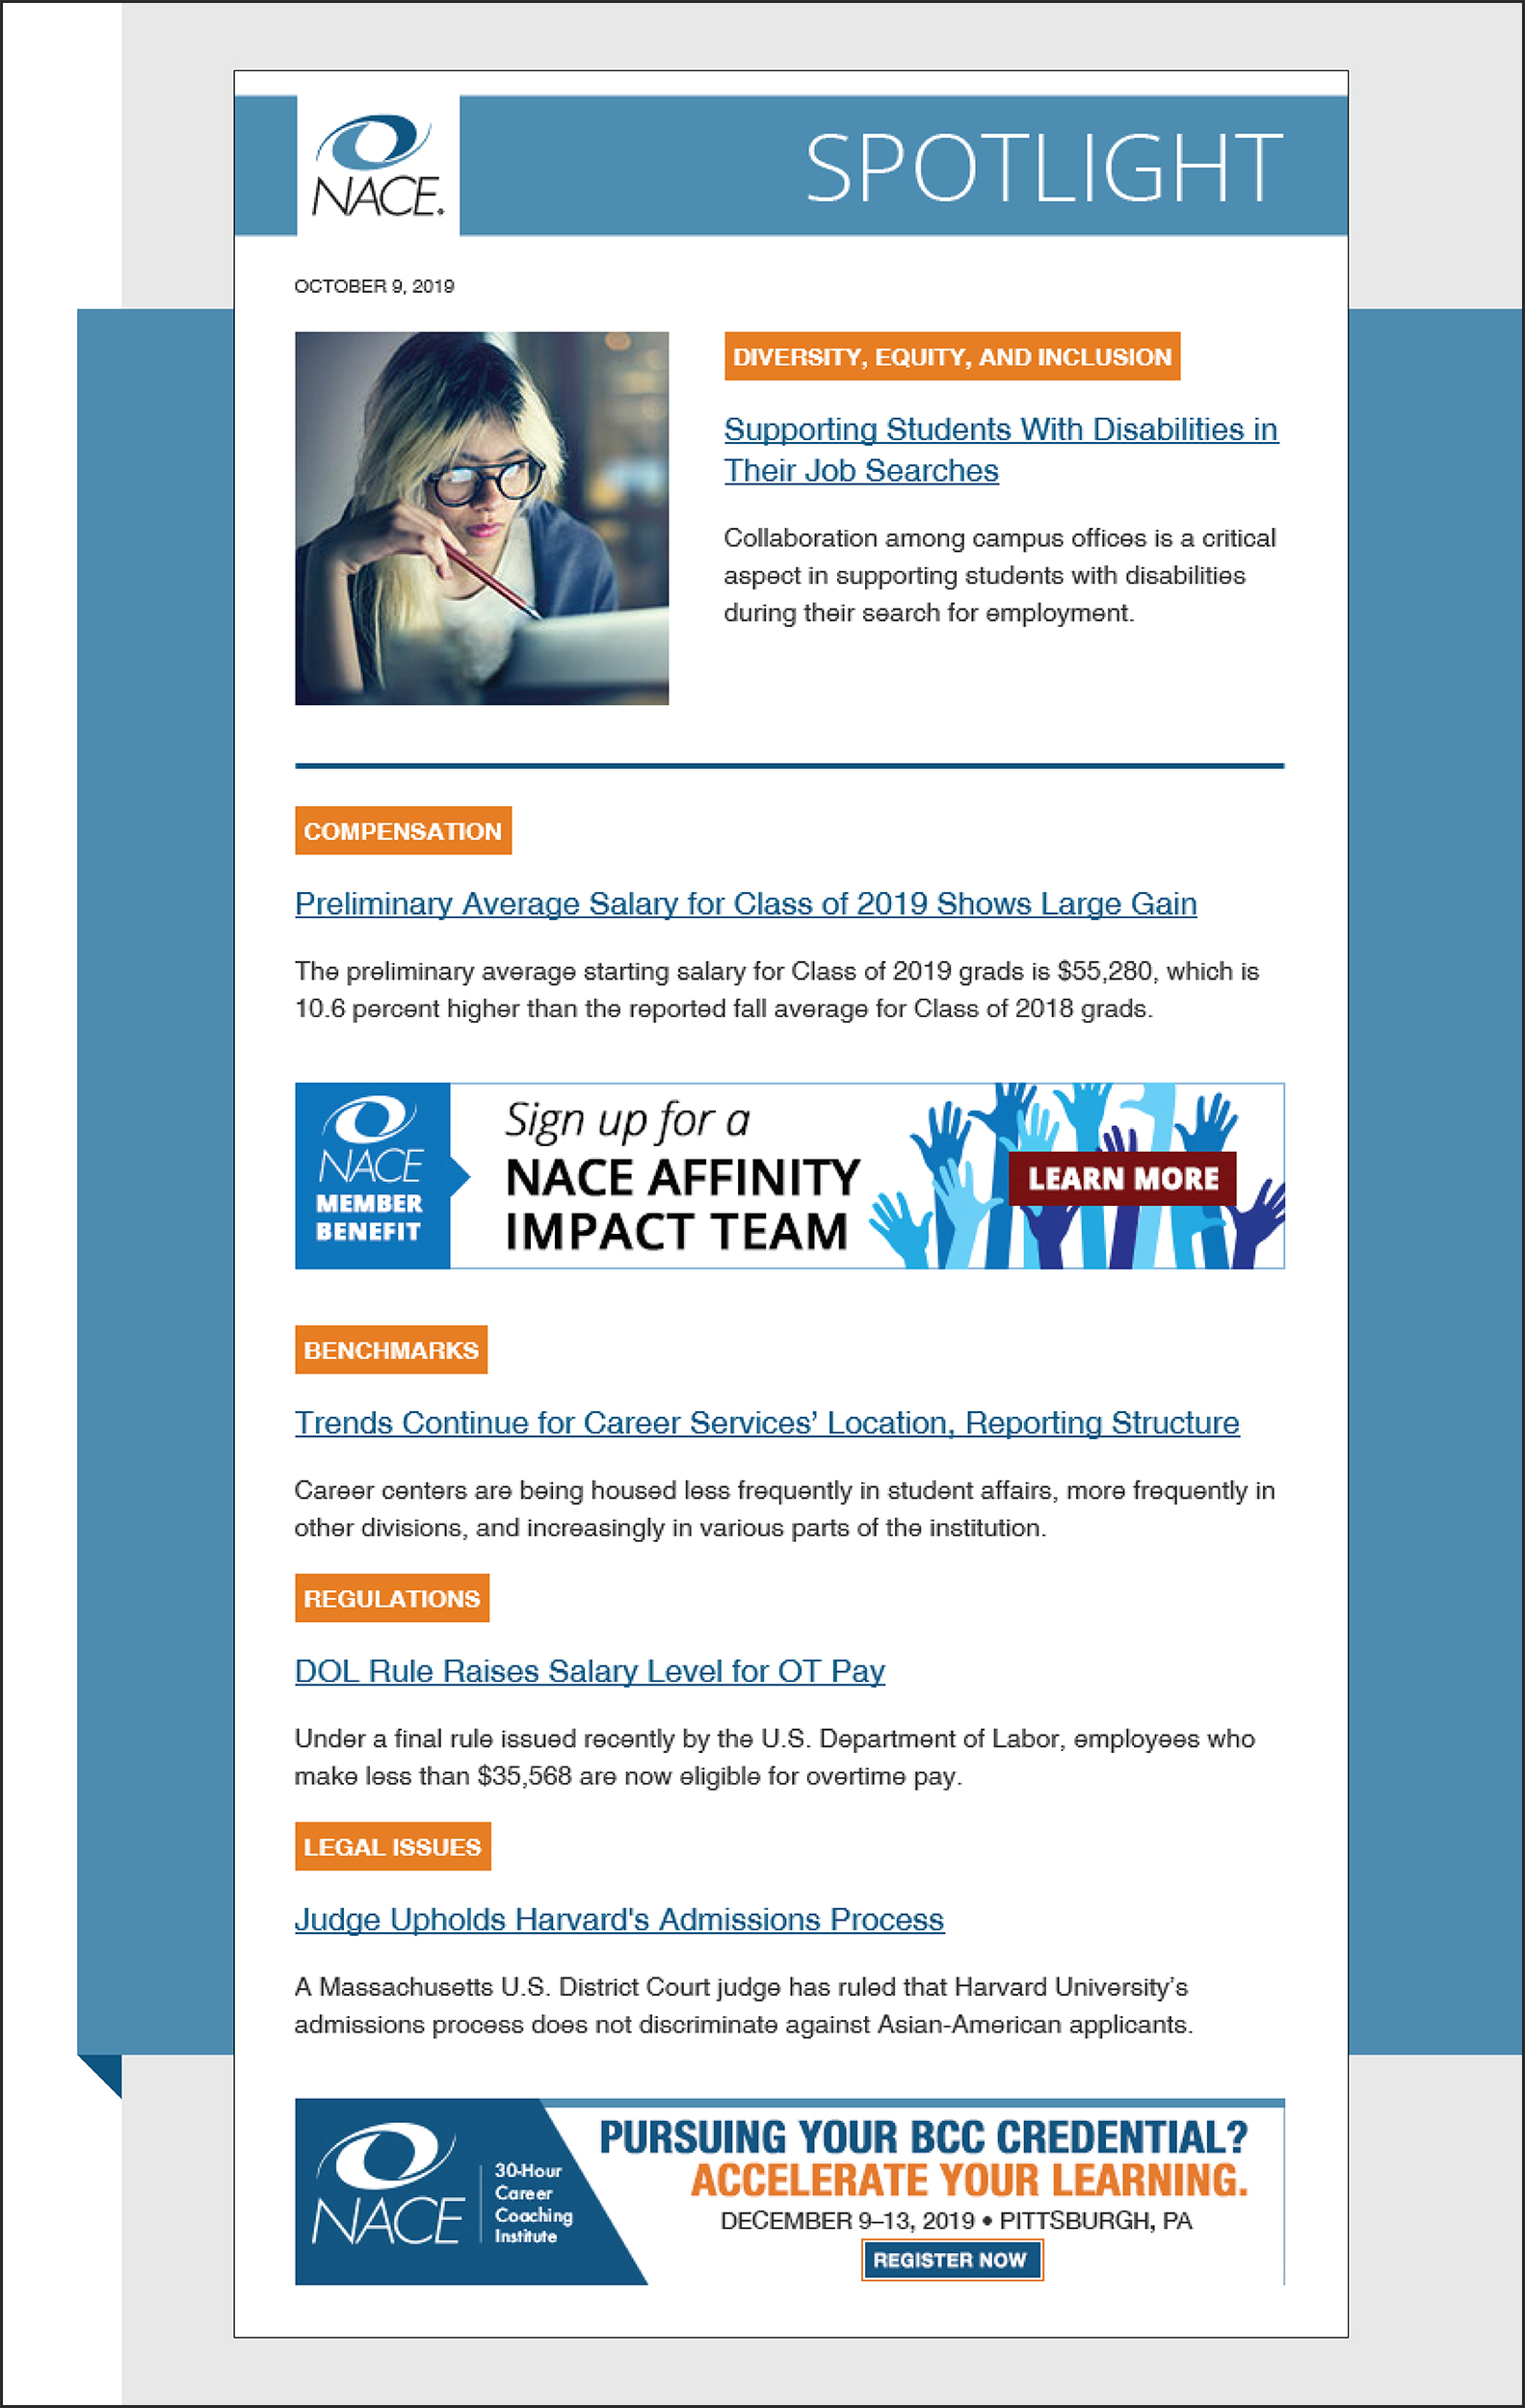 A screenshot of the NACE Spotlight email newsletter, featuring banner advertisements.